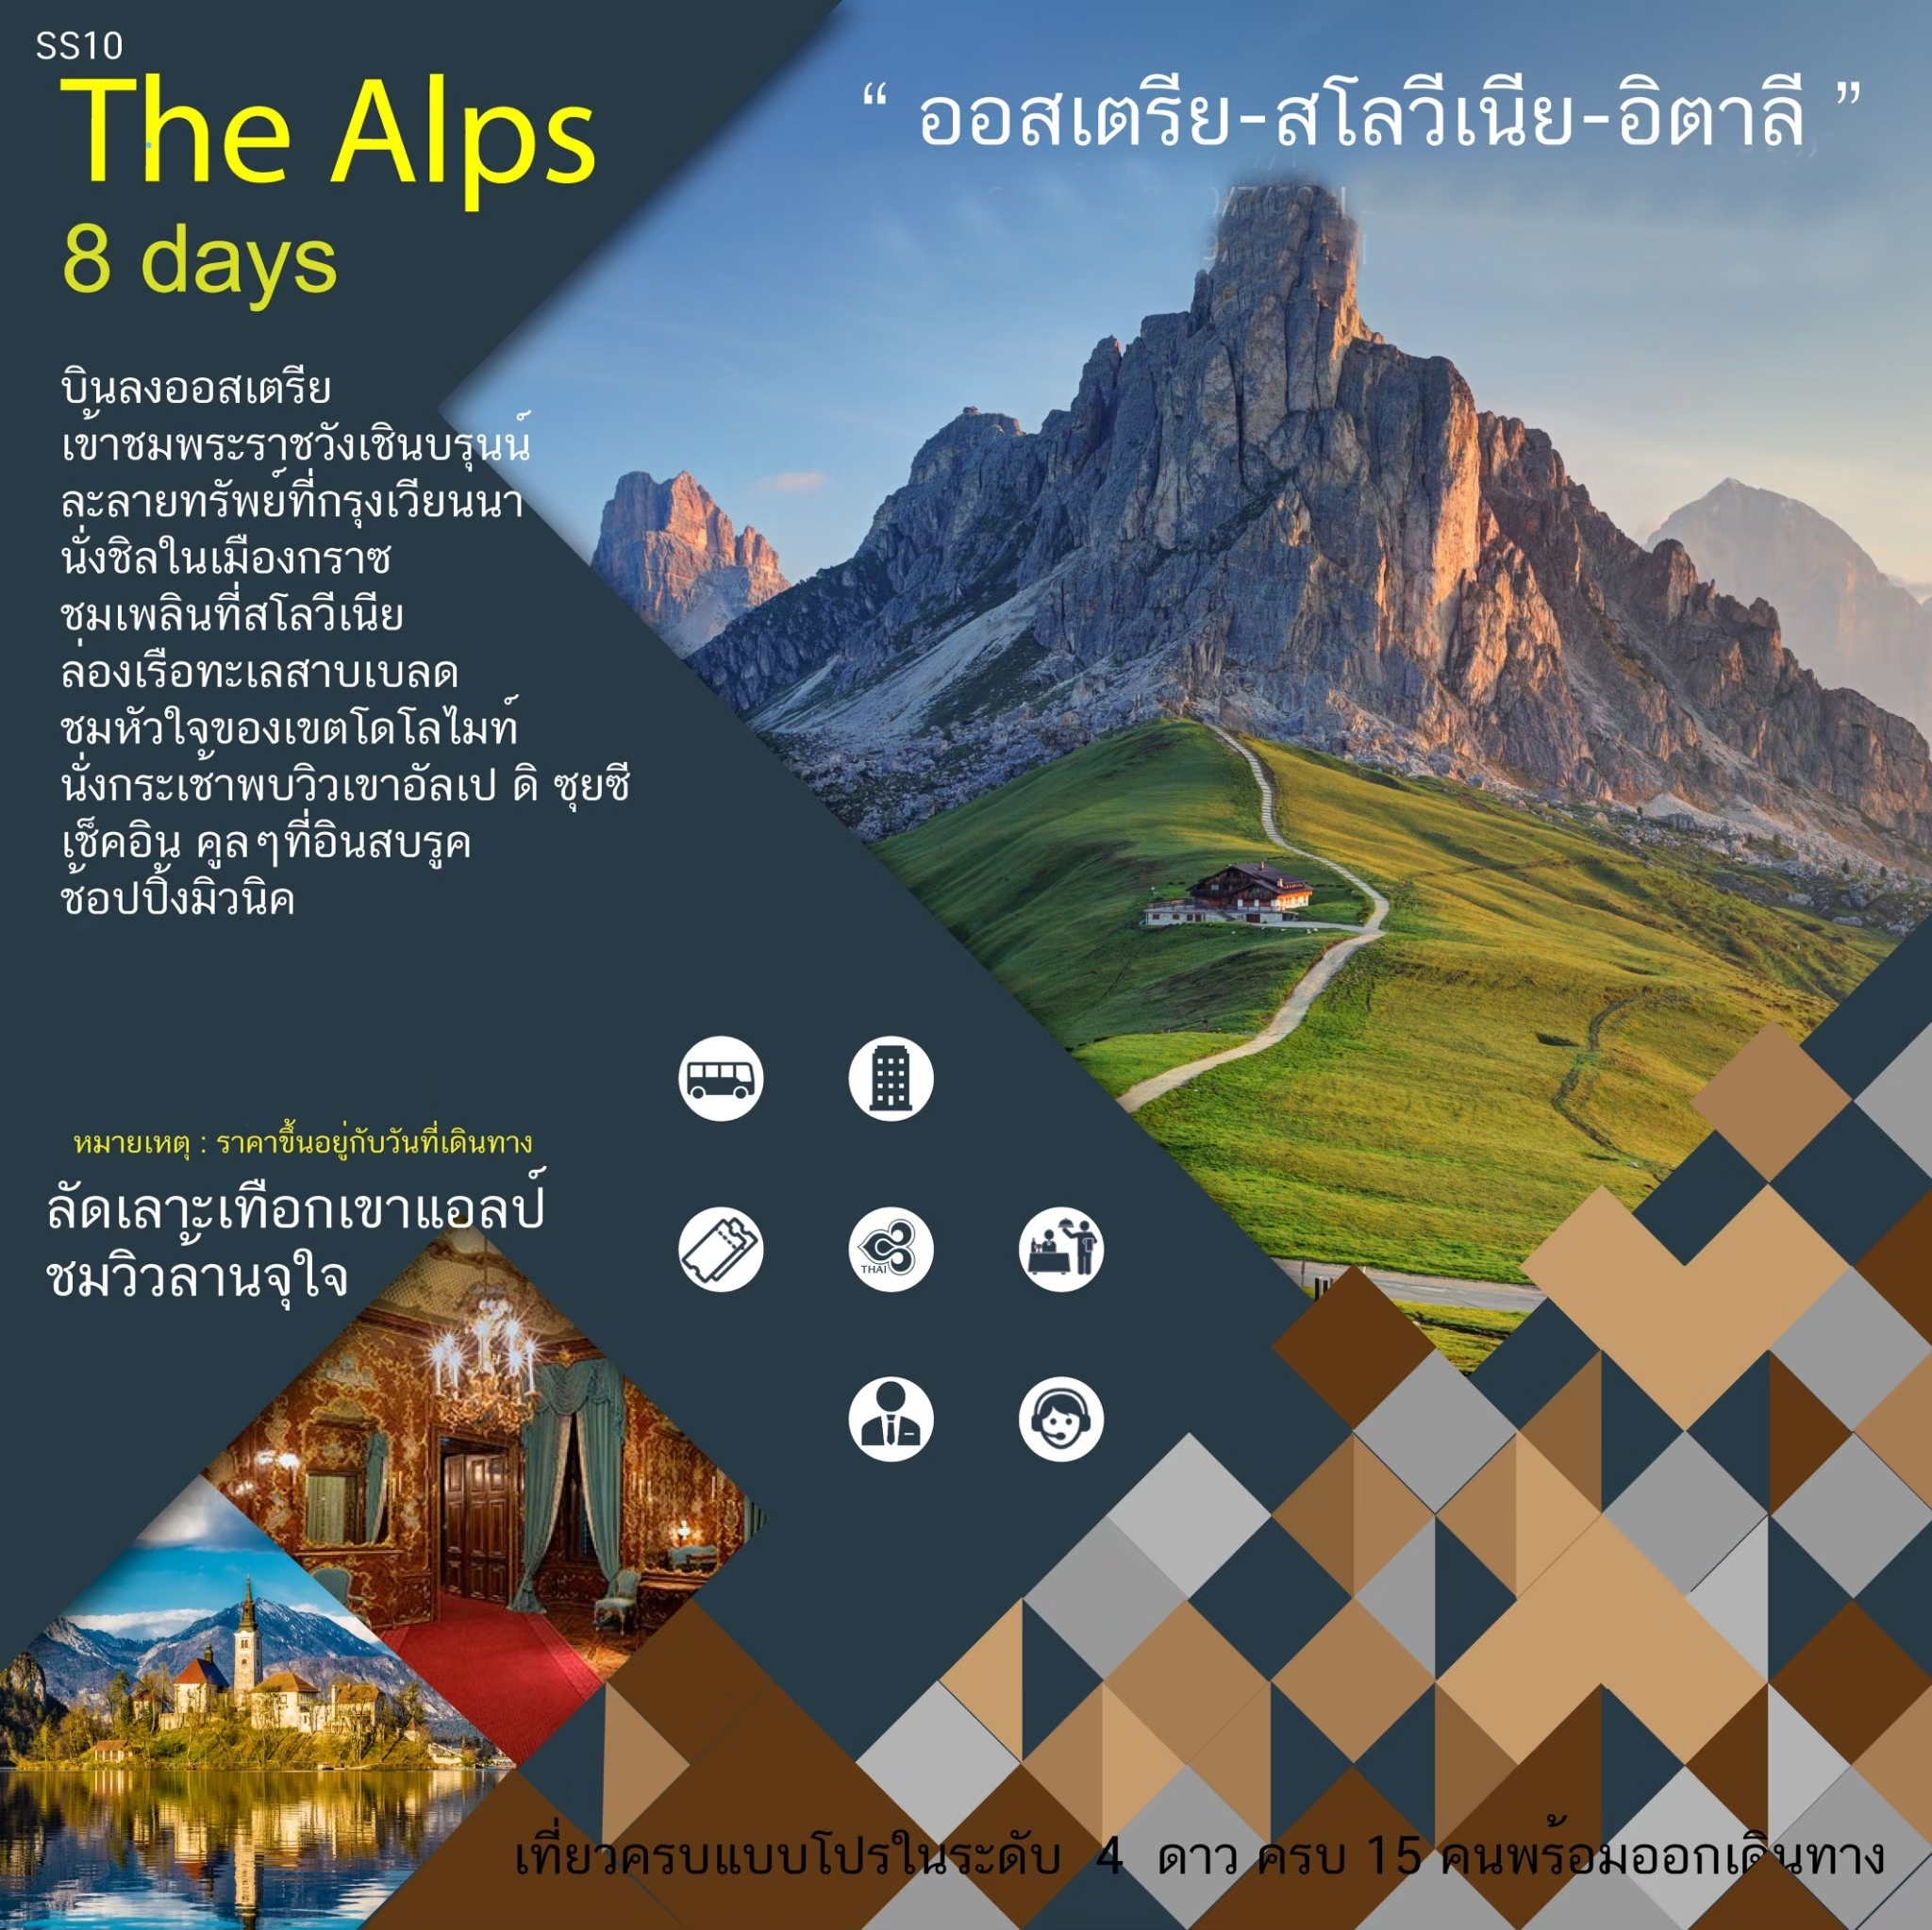 SMART_The Alps